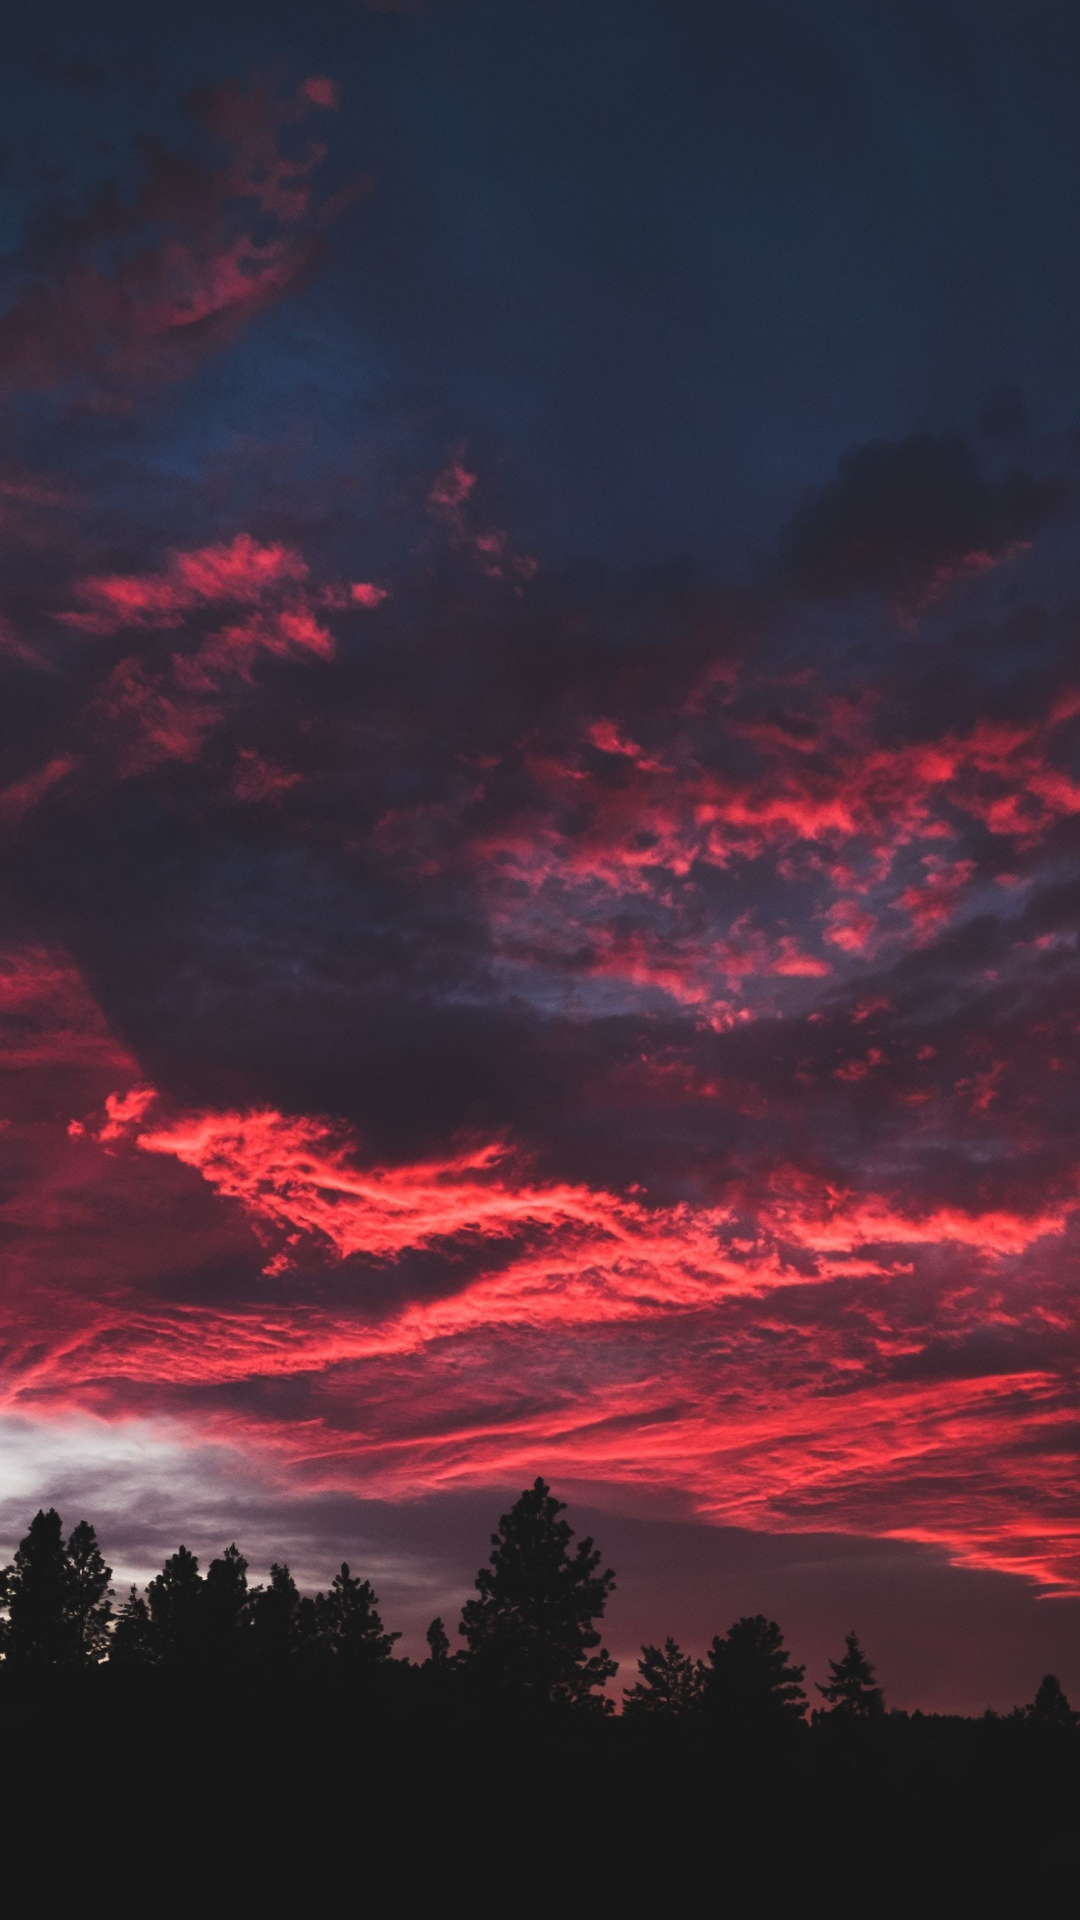 Download 1080x1920 Wallpaper Colorful, Clouds, Sunset